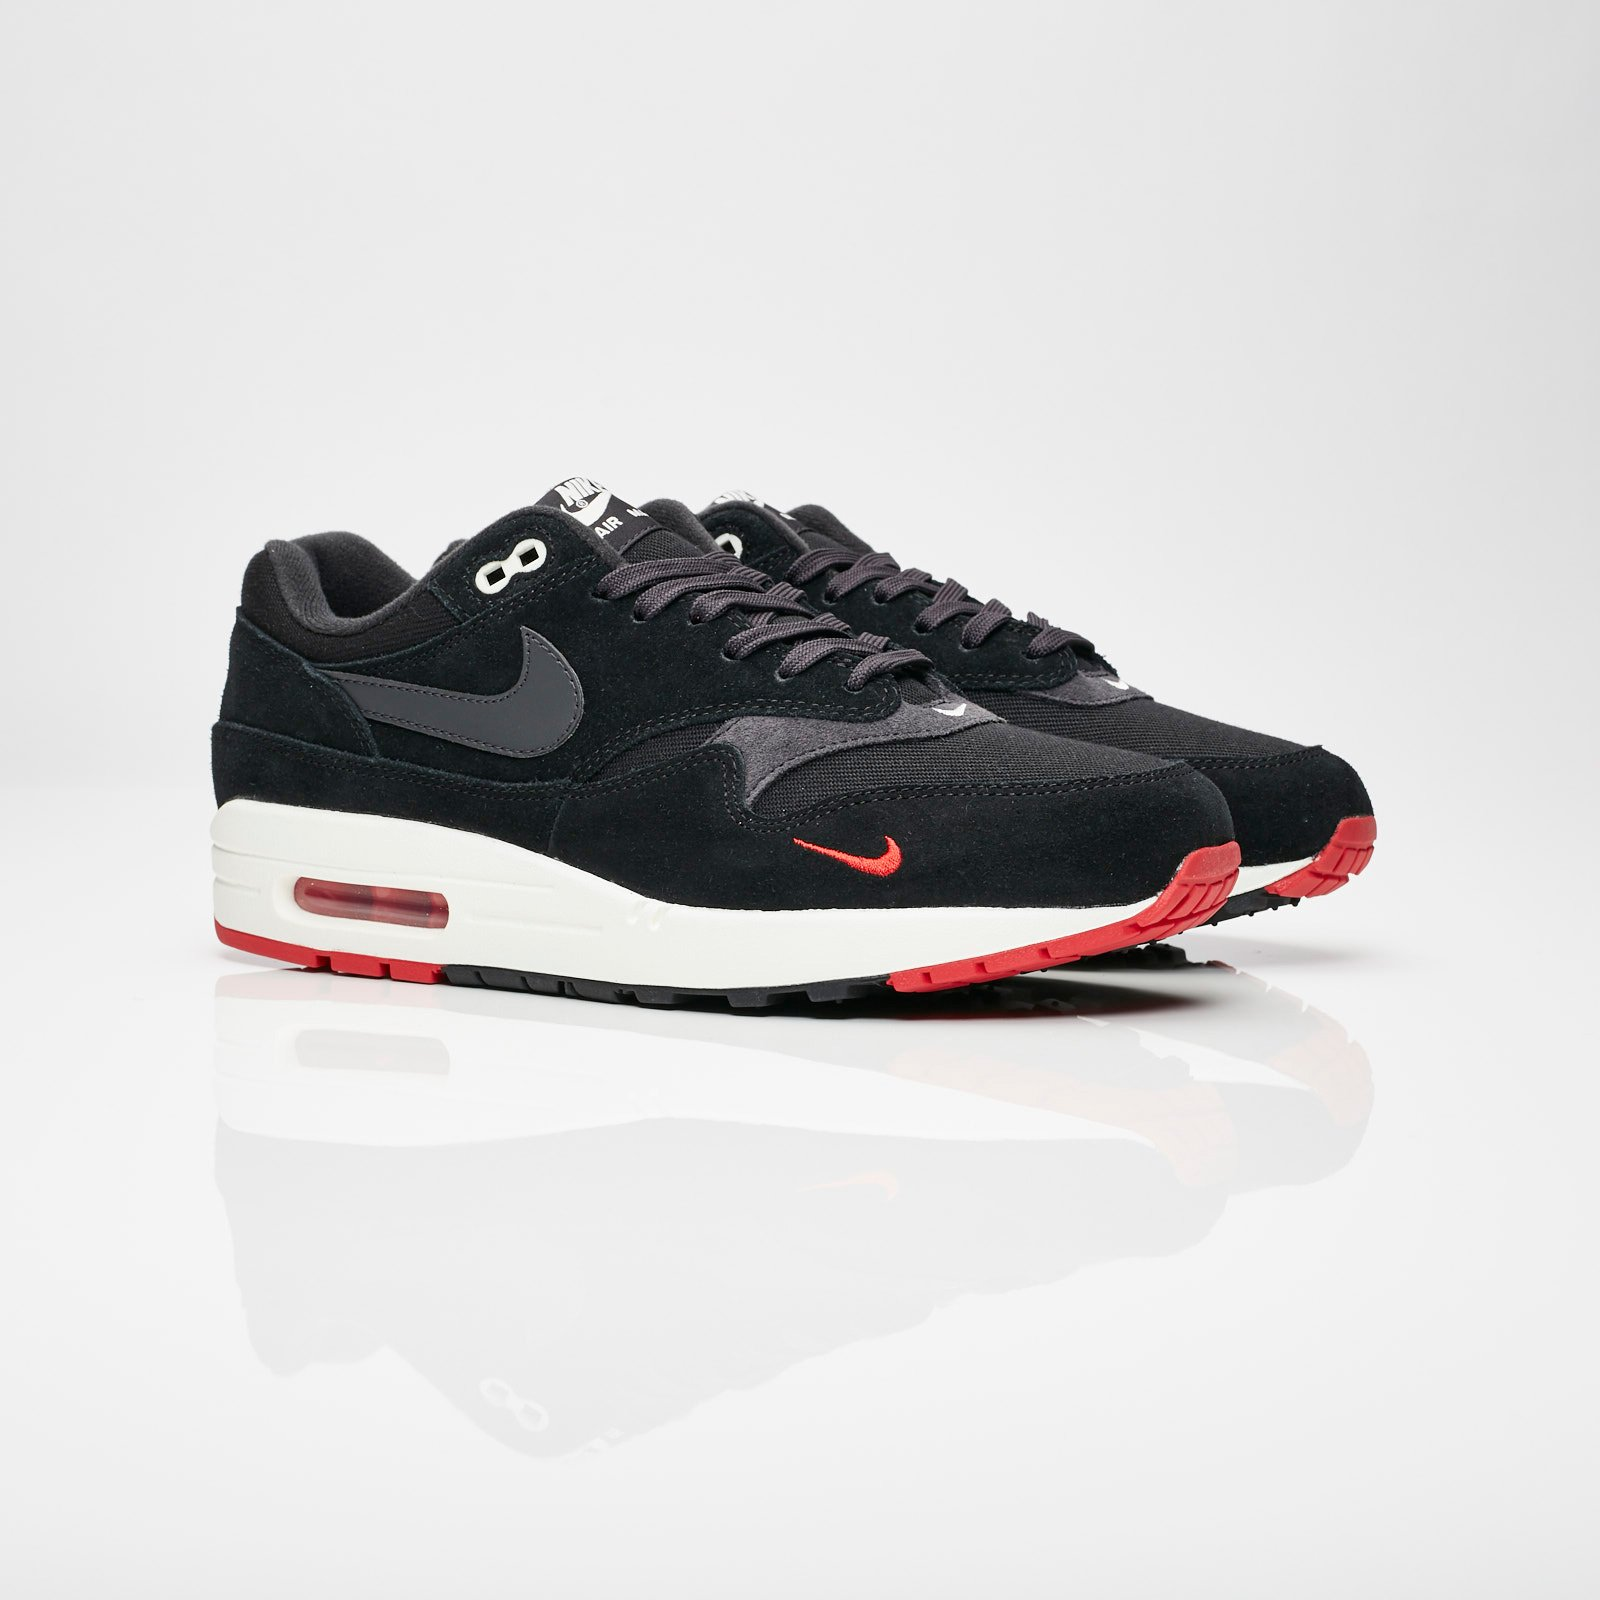 quality design efced 0a39e Nike Sportswear Air Max 1 Premium